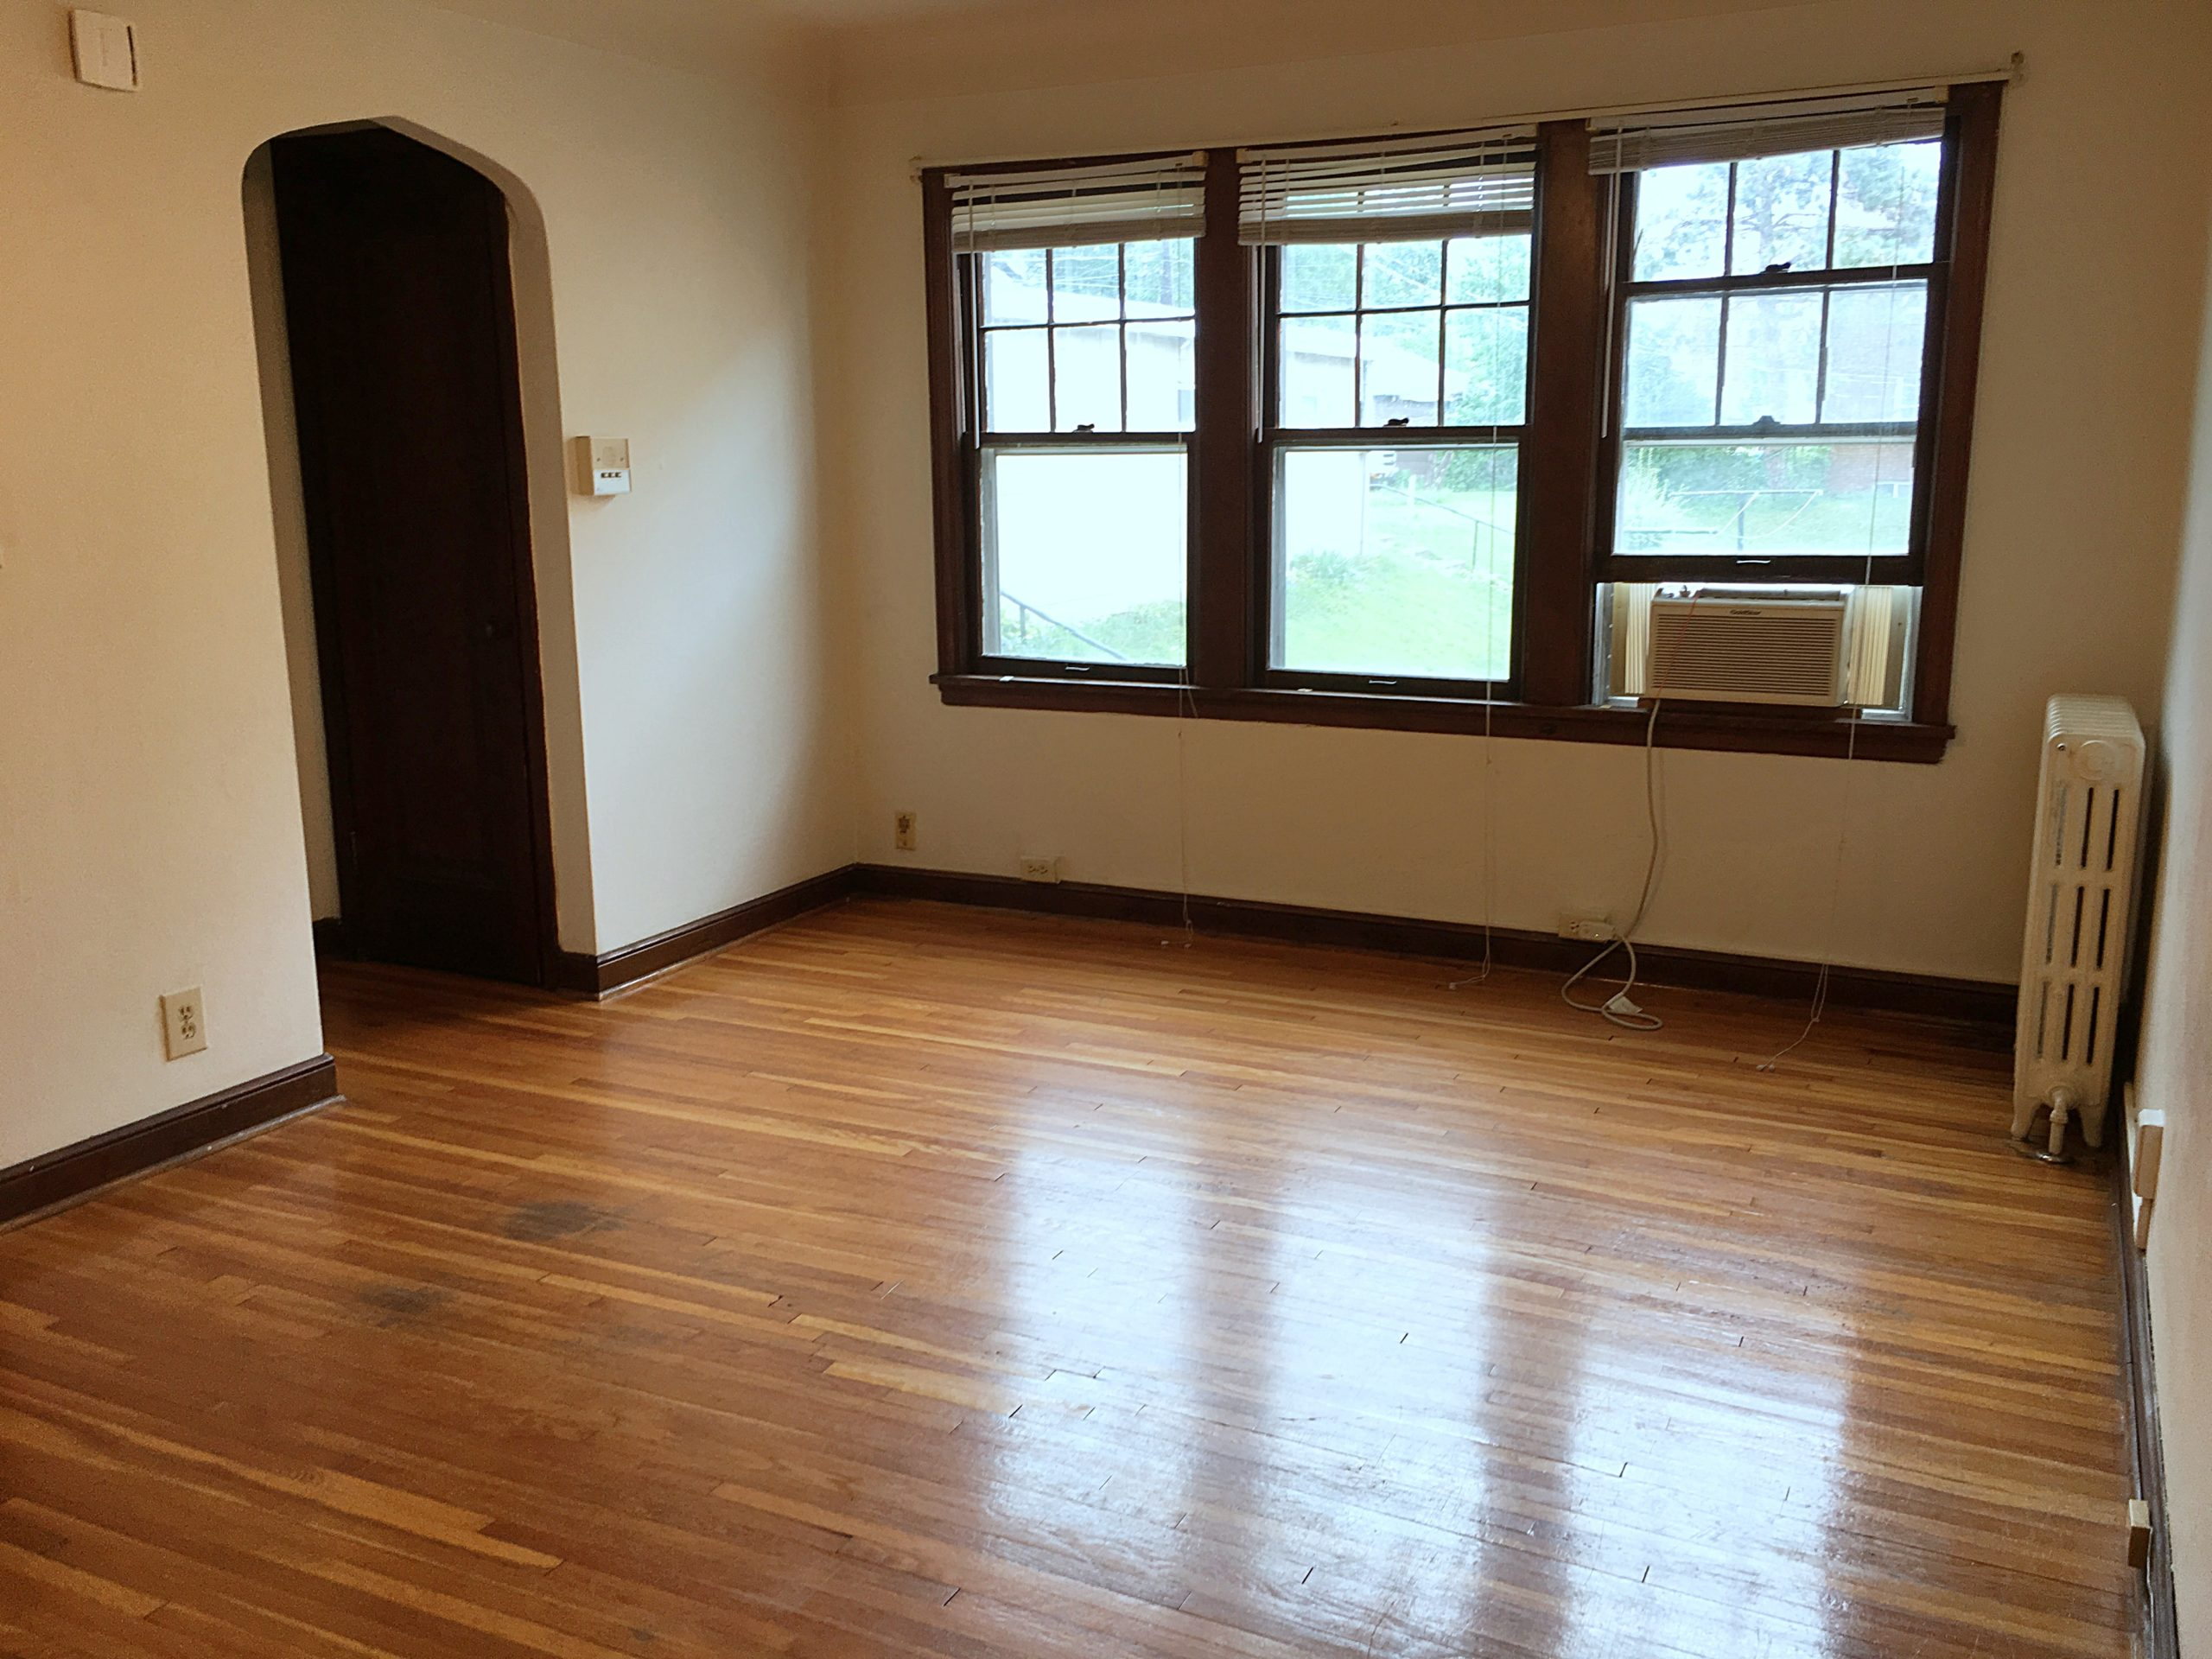 Charles Place Apartments for rent